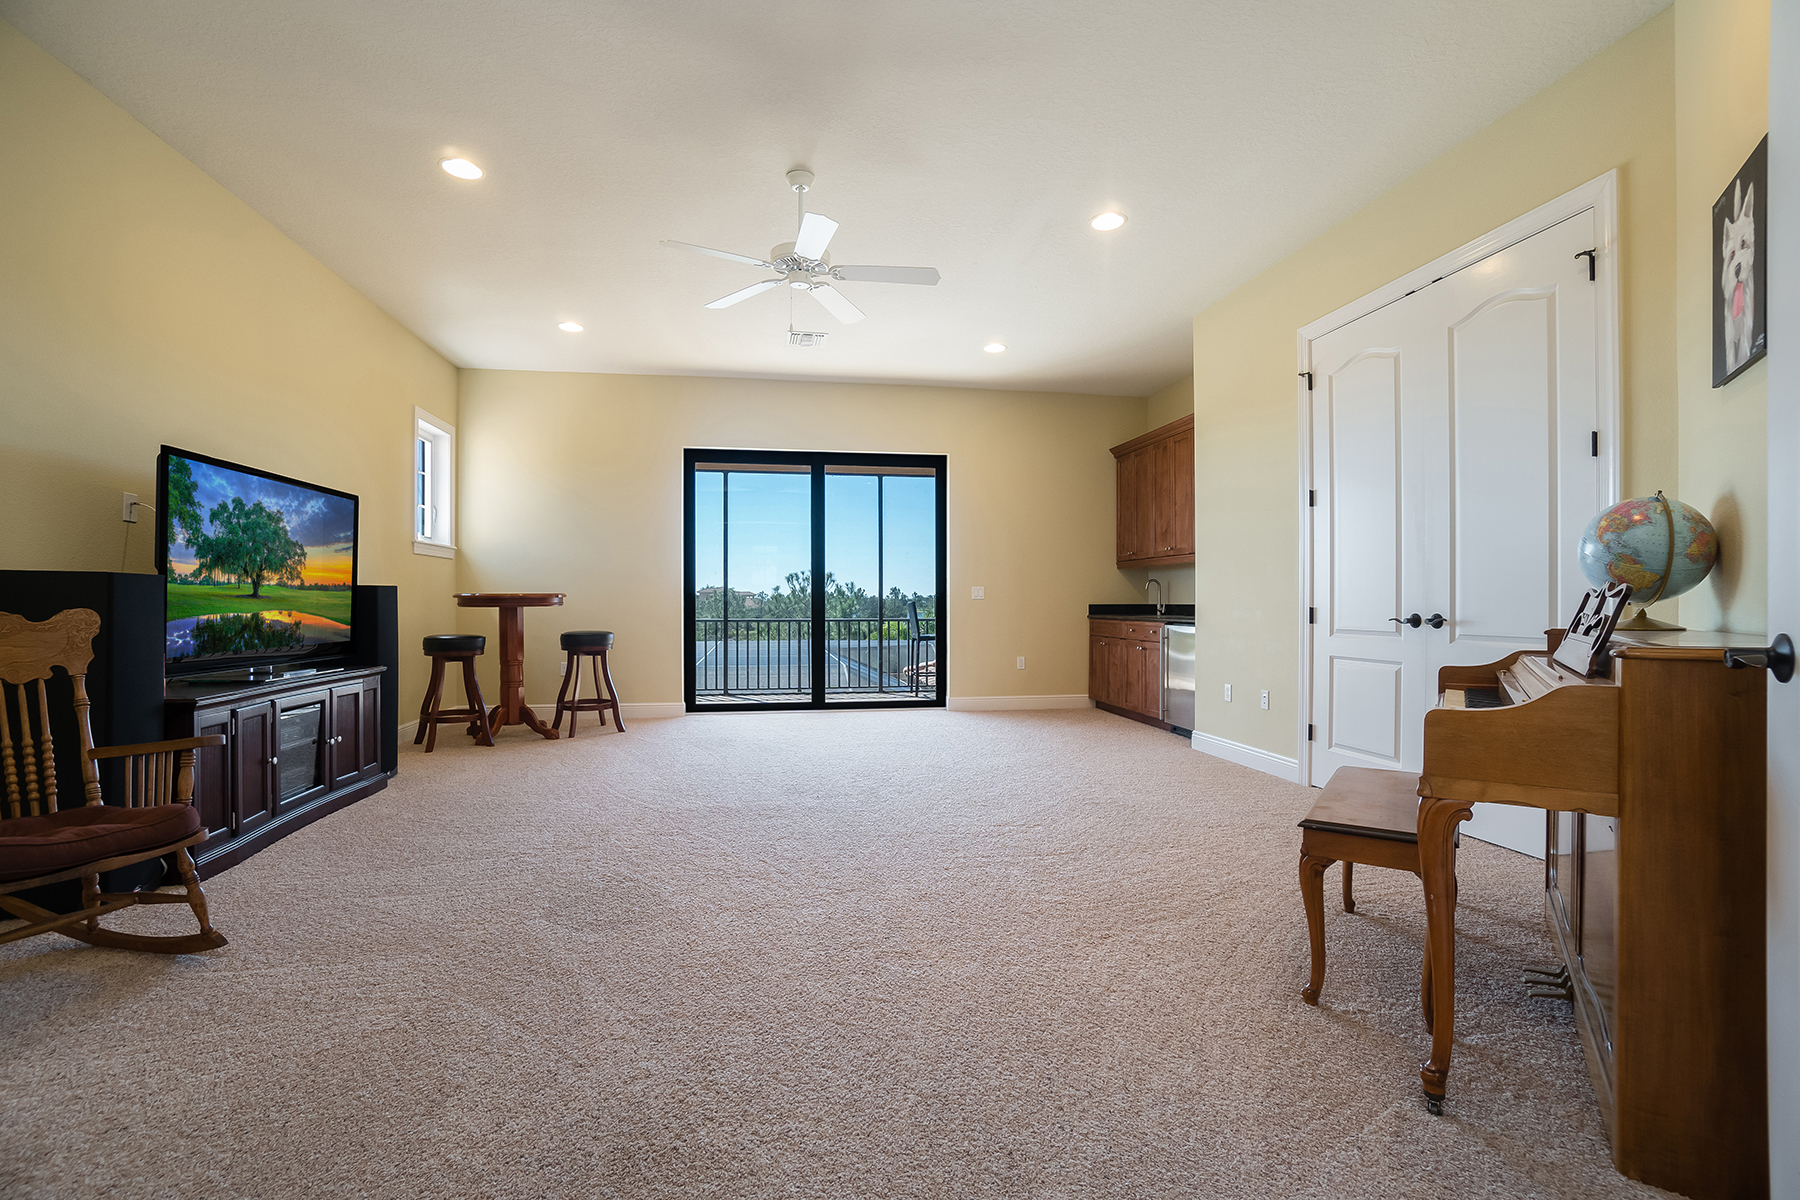 Additional photo for property listing at THE LAKE CLUB 16116  Clearlake Ave,  Lakewood Ranch, Florida 34202 United States